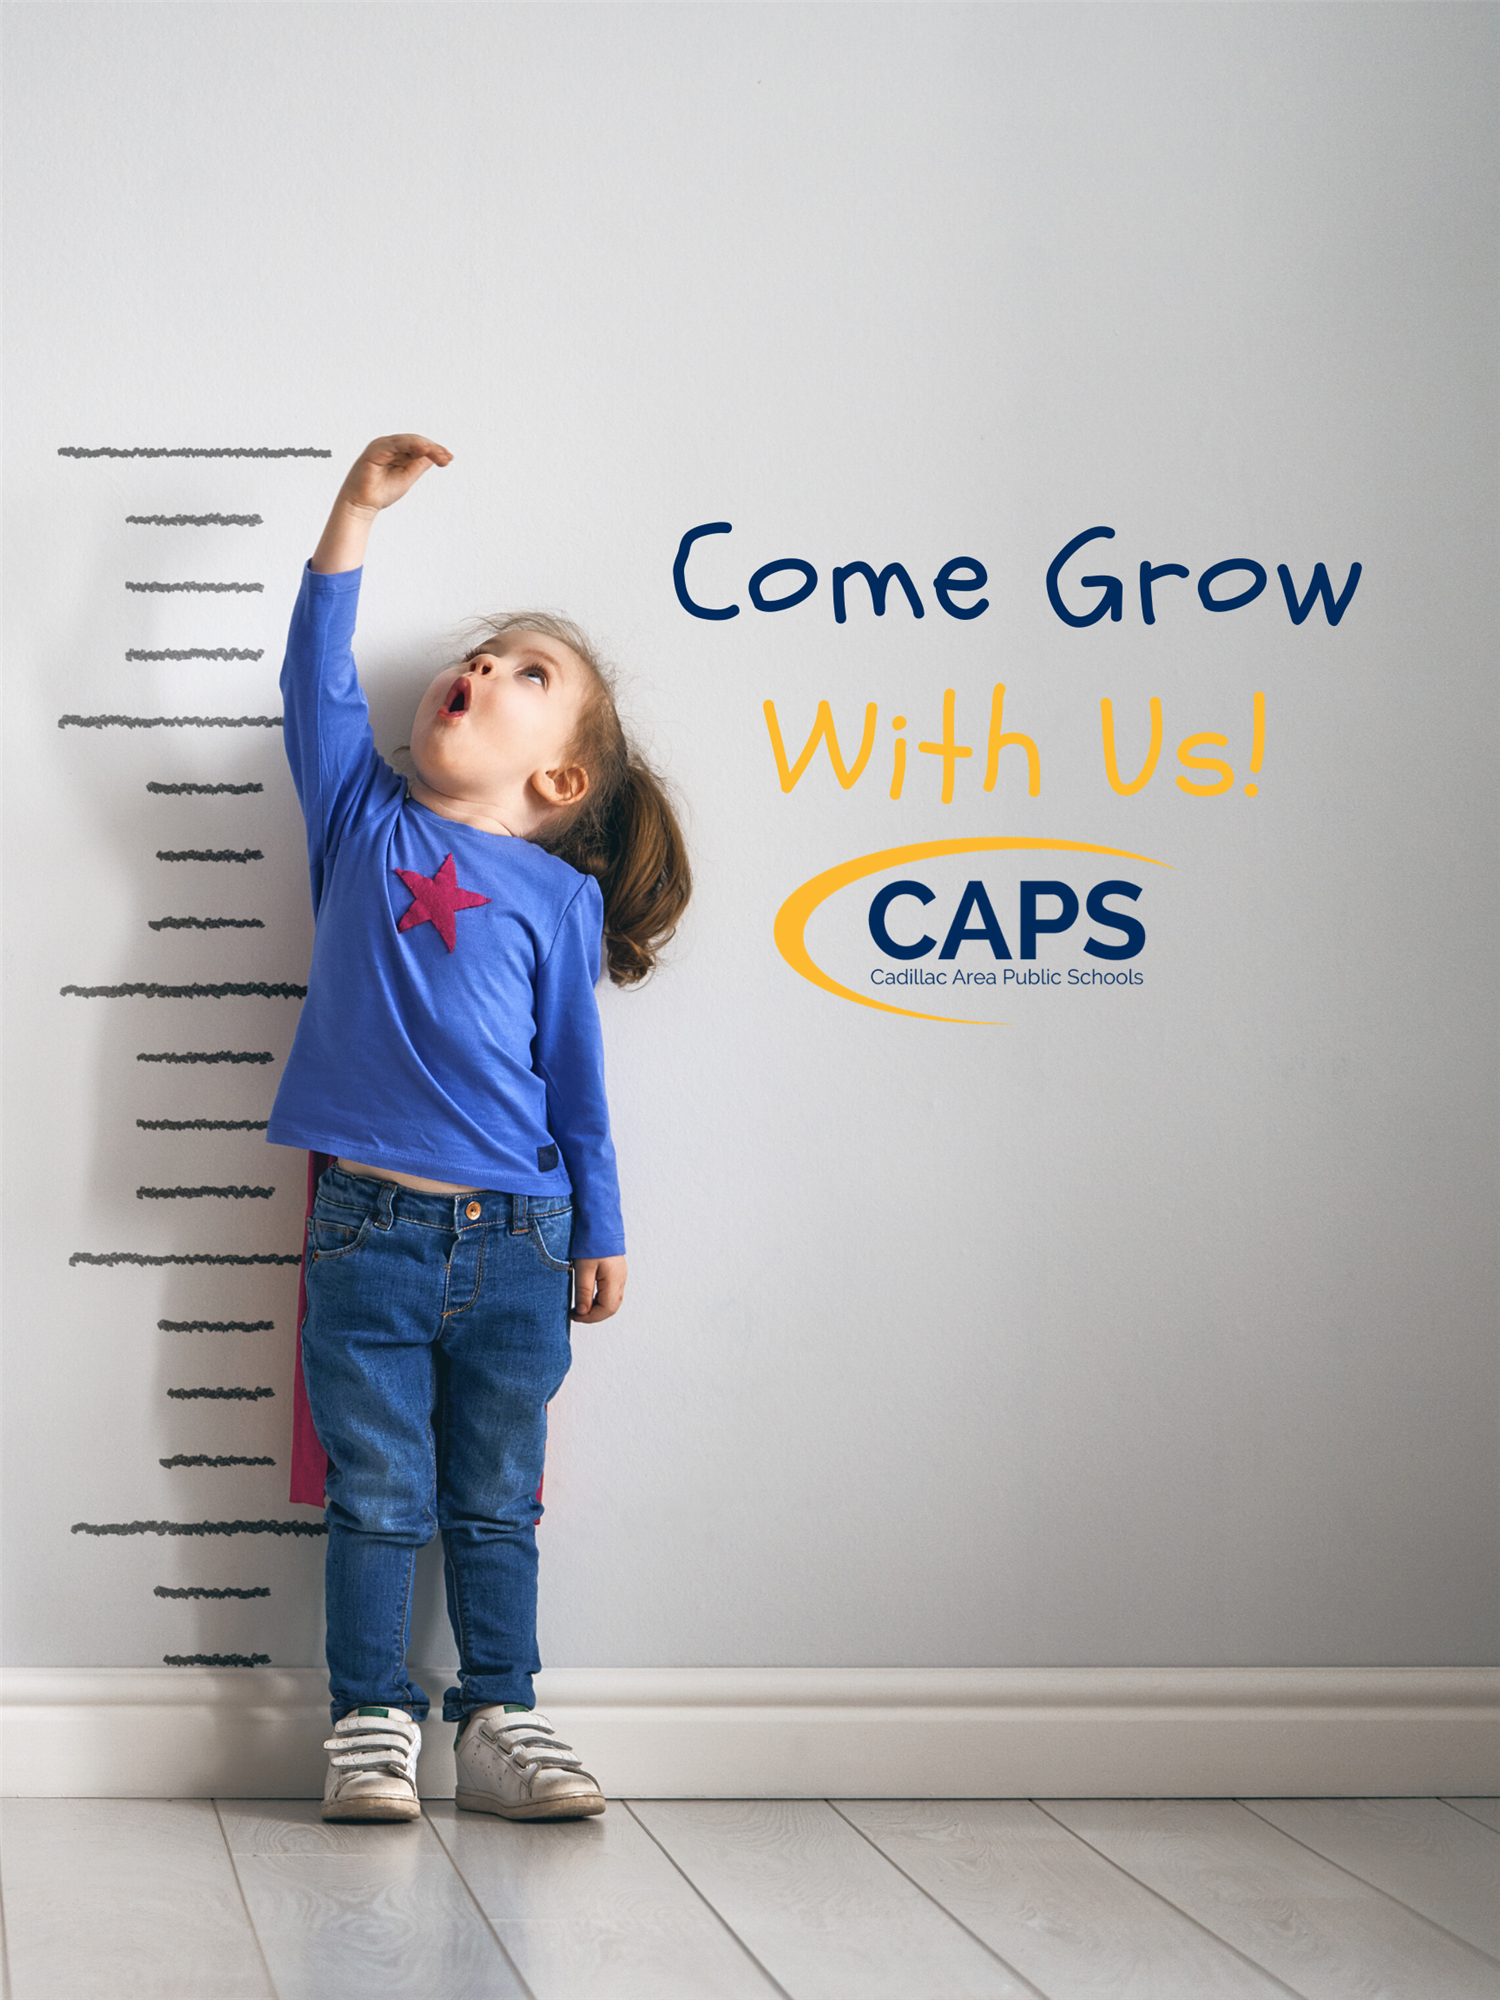 Come Grow with Us little girl and caps logo